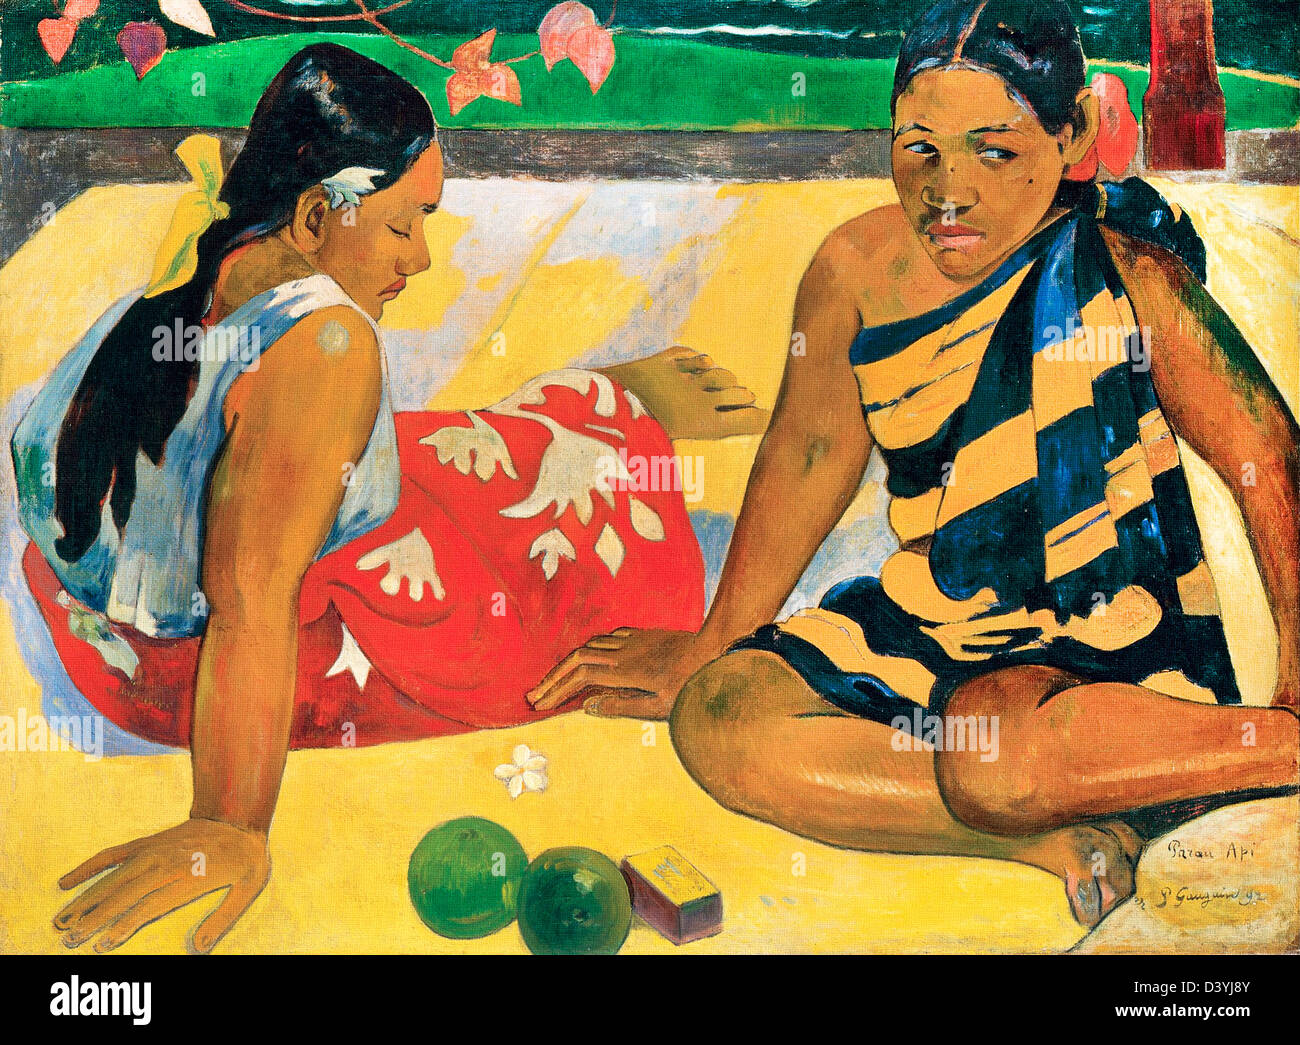 Paul Gauguin, Parau Api. What News 1892 Oil on canvas. New Masters Gallery, Dresden, Germany - Stock Image